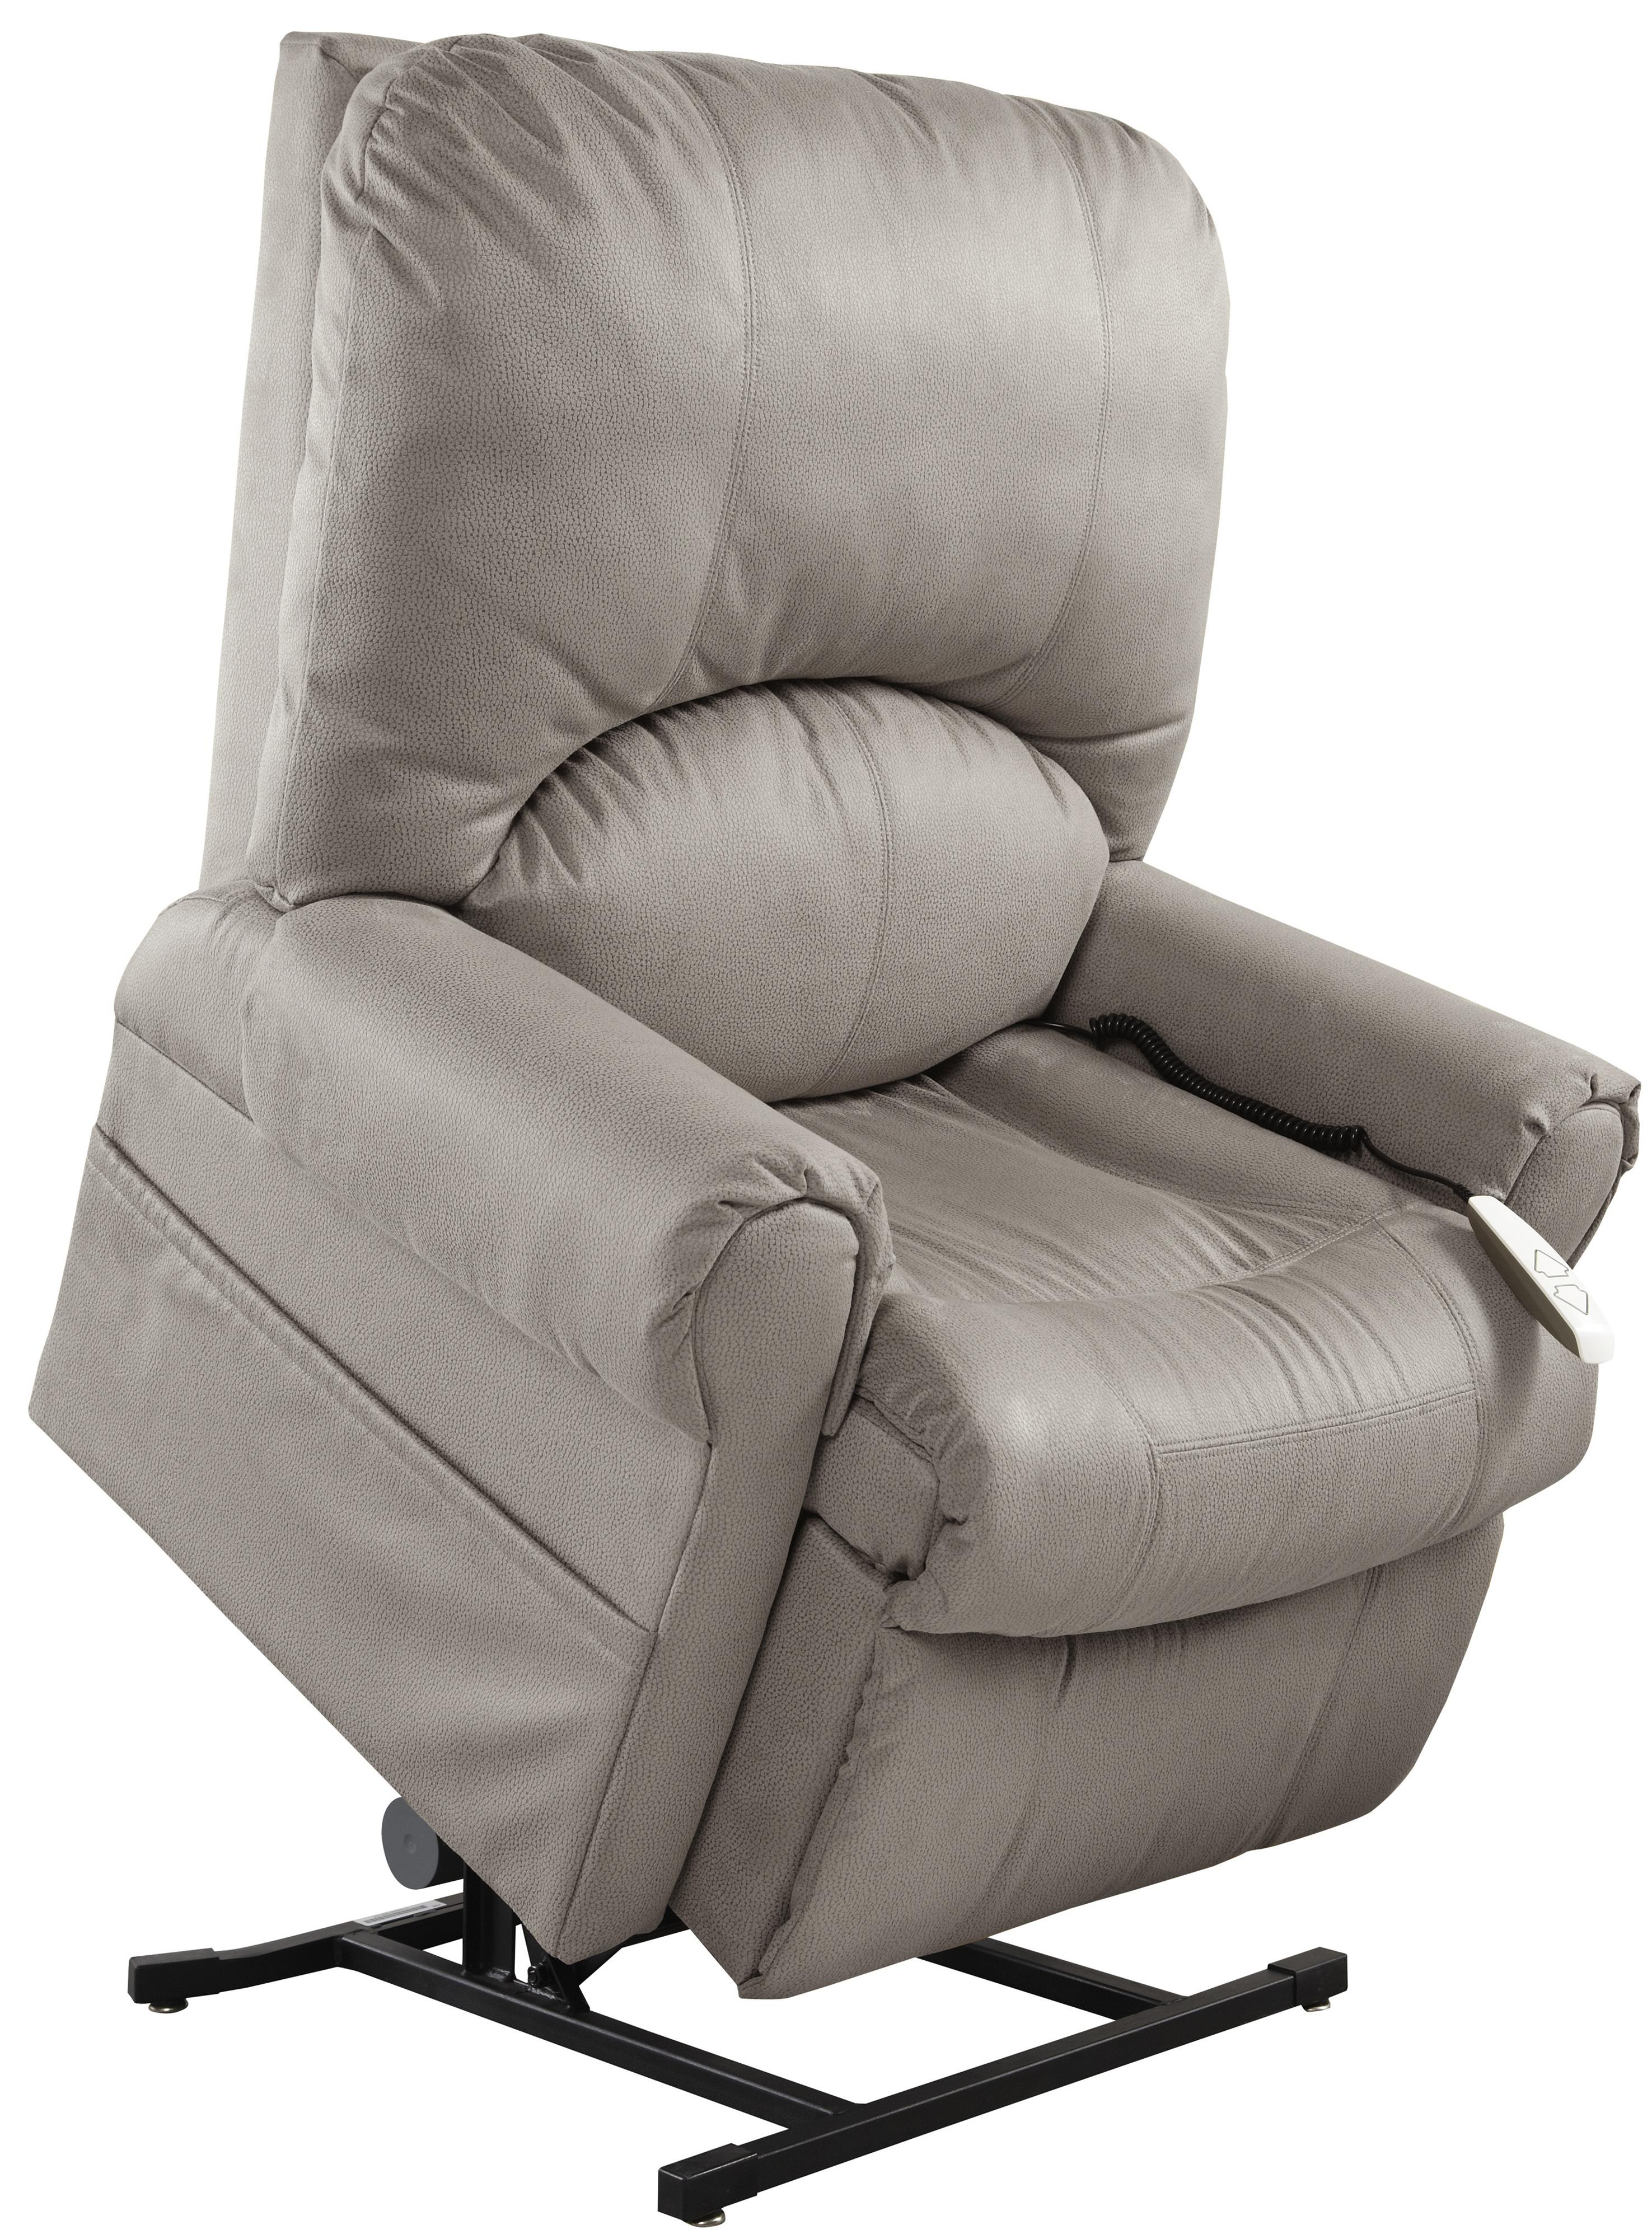 Windermere Motion Lift Chairs 3-Position Reclining Lift Chair - Item Number: AS-6001 Stone